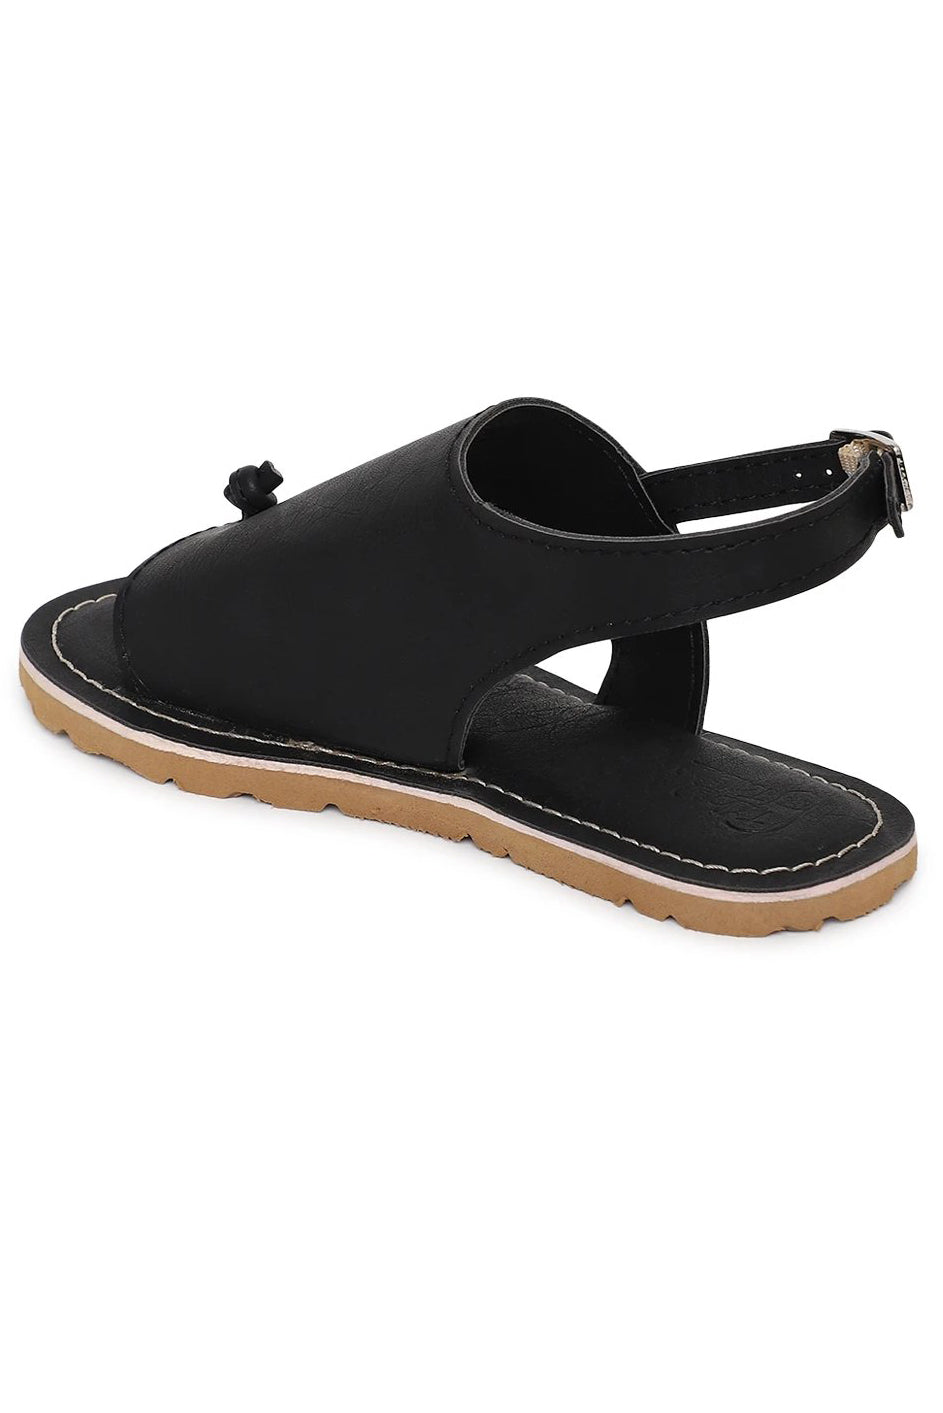 Boy Black Urban Sandal